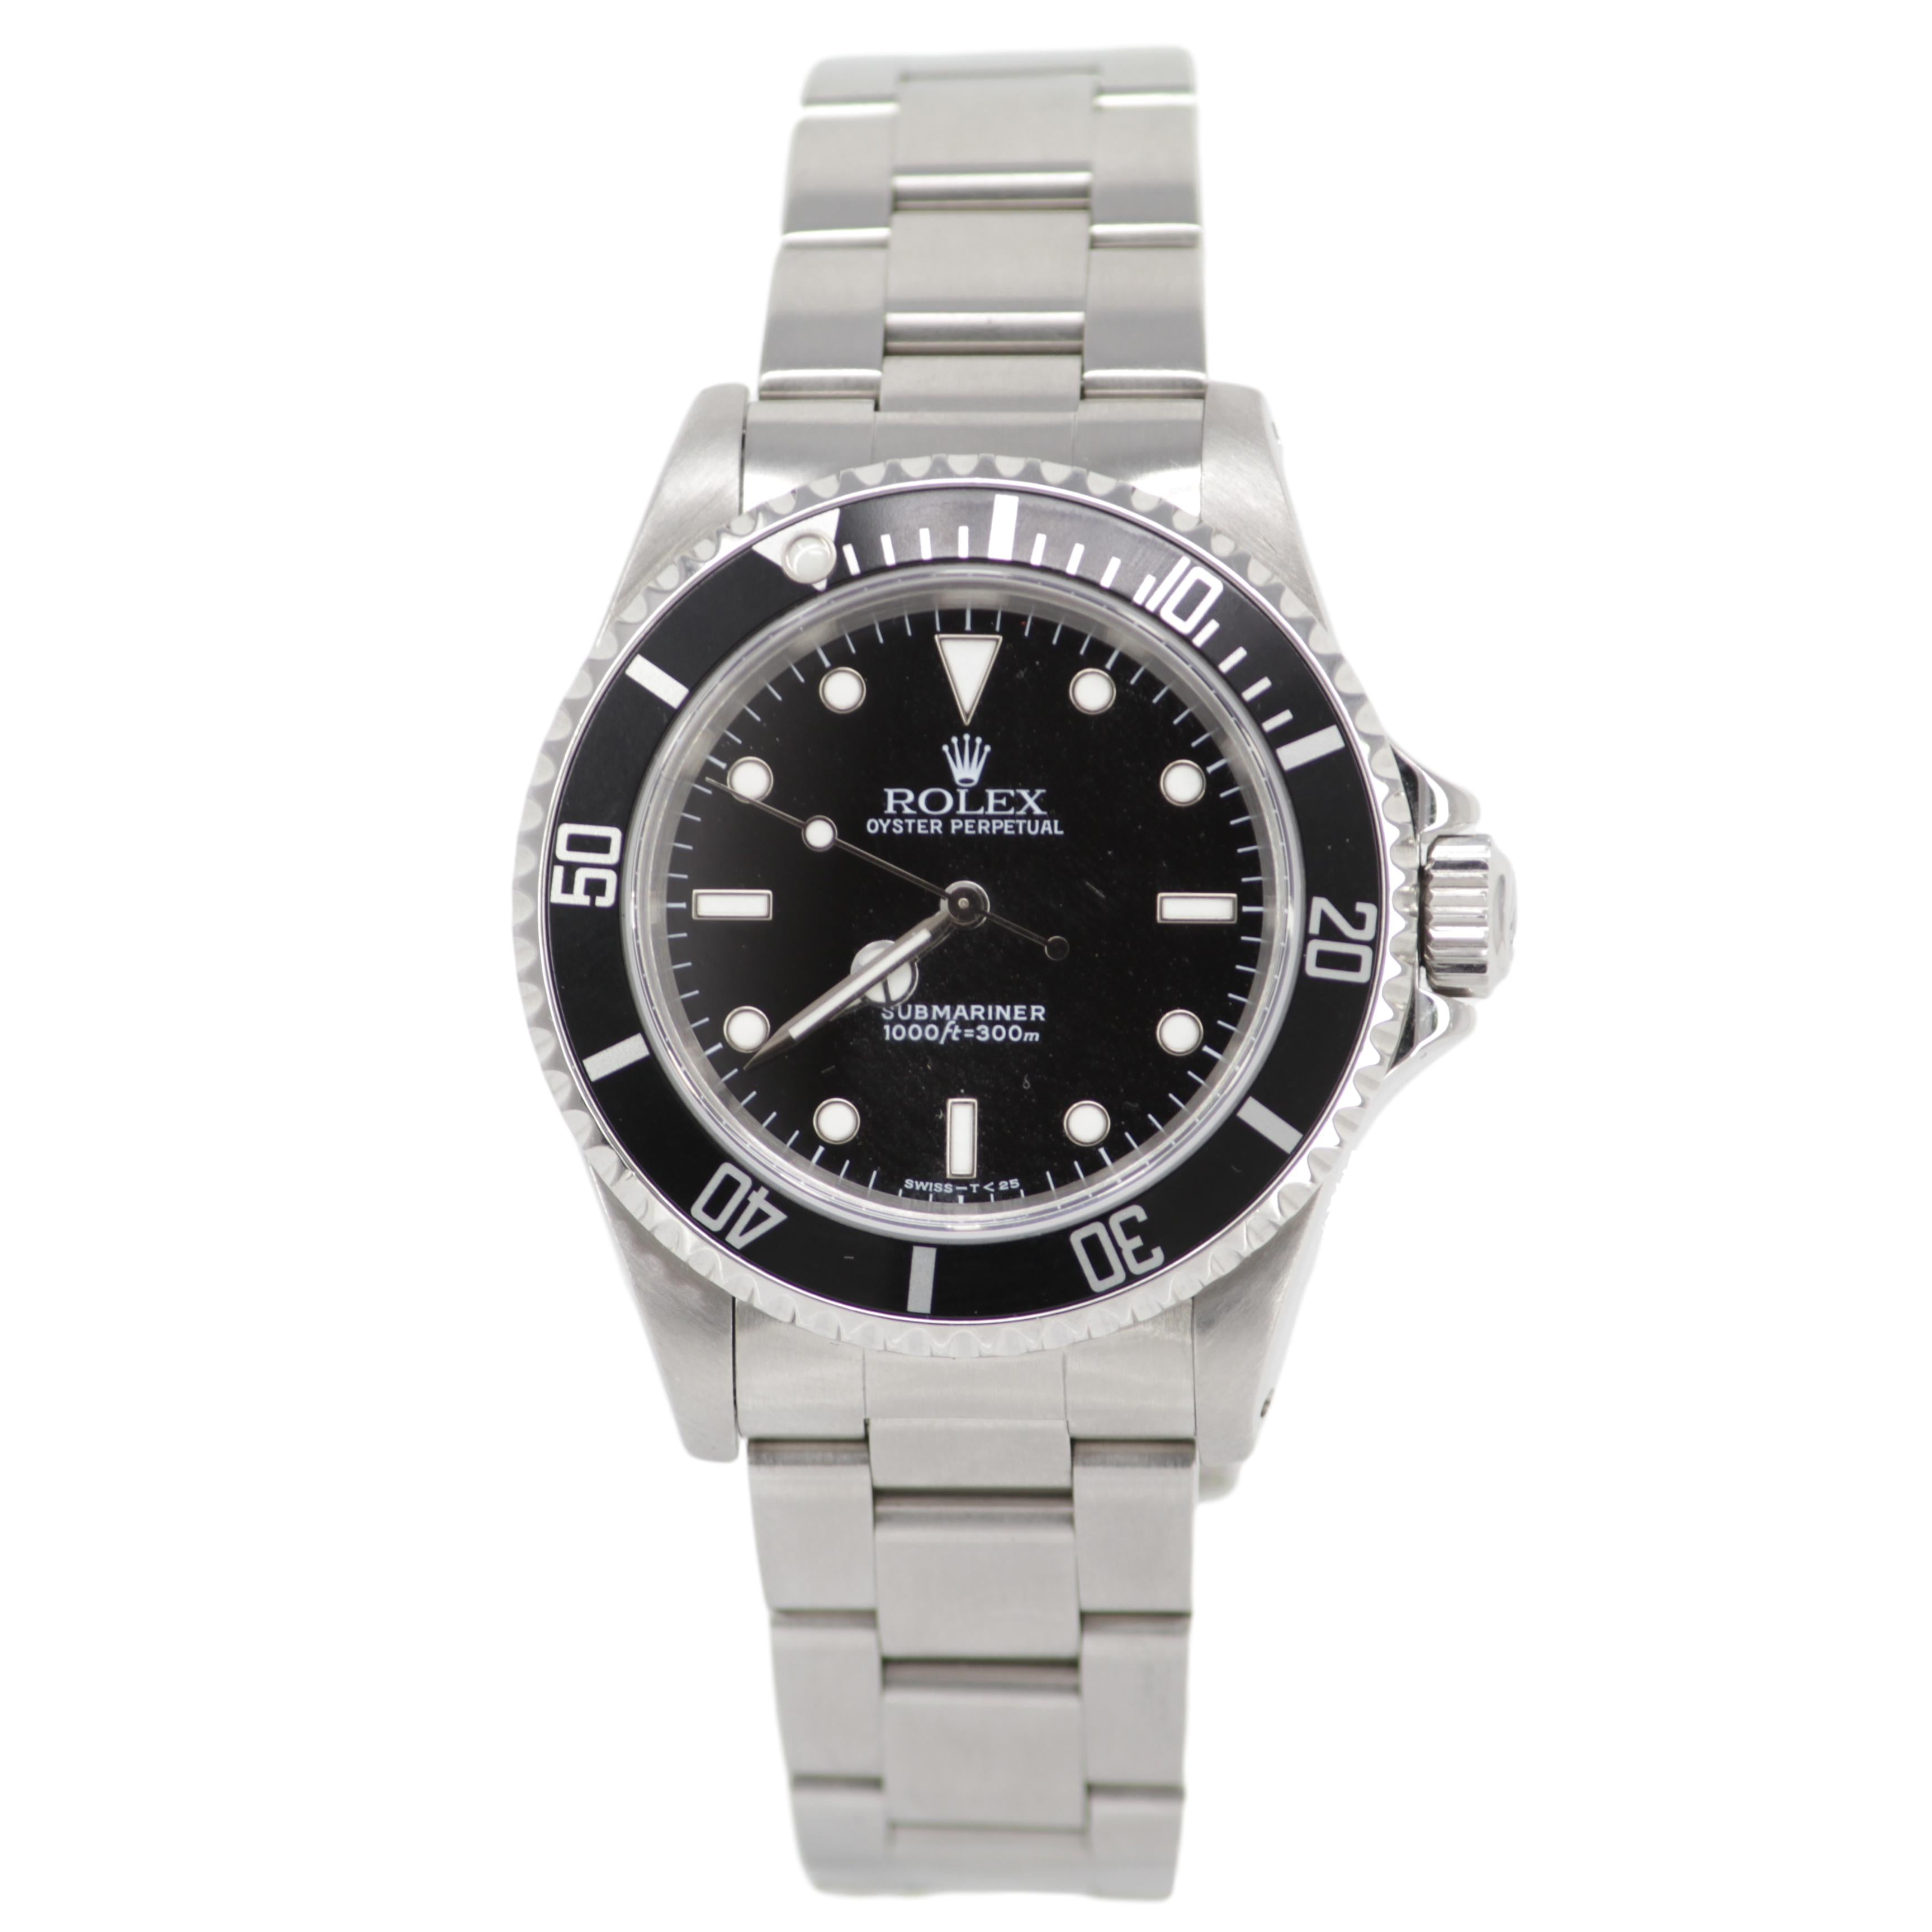 Rolex Oyster Perpetual Submariner 1996 Men's Watch No Date Rotating Bezel Stainless Steel